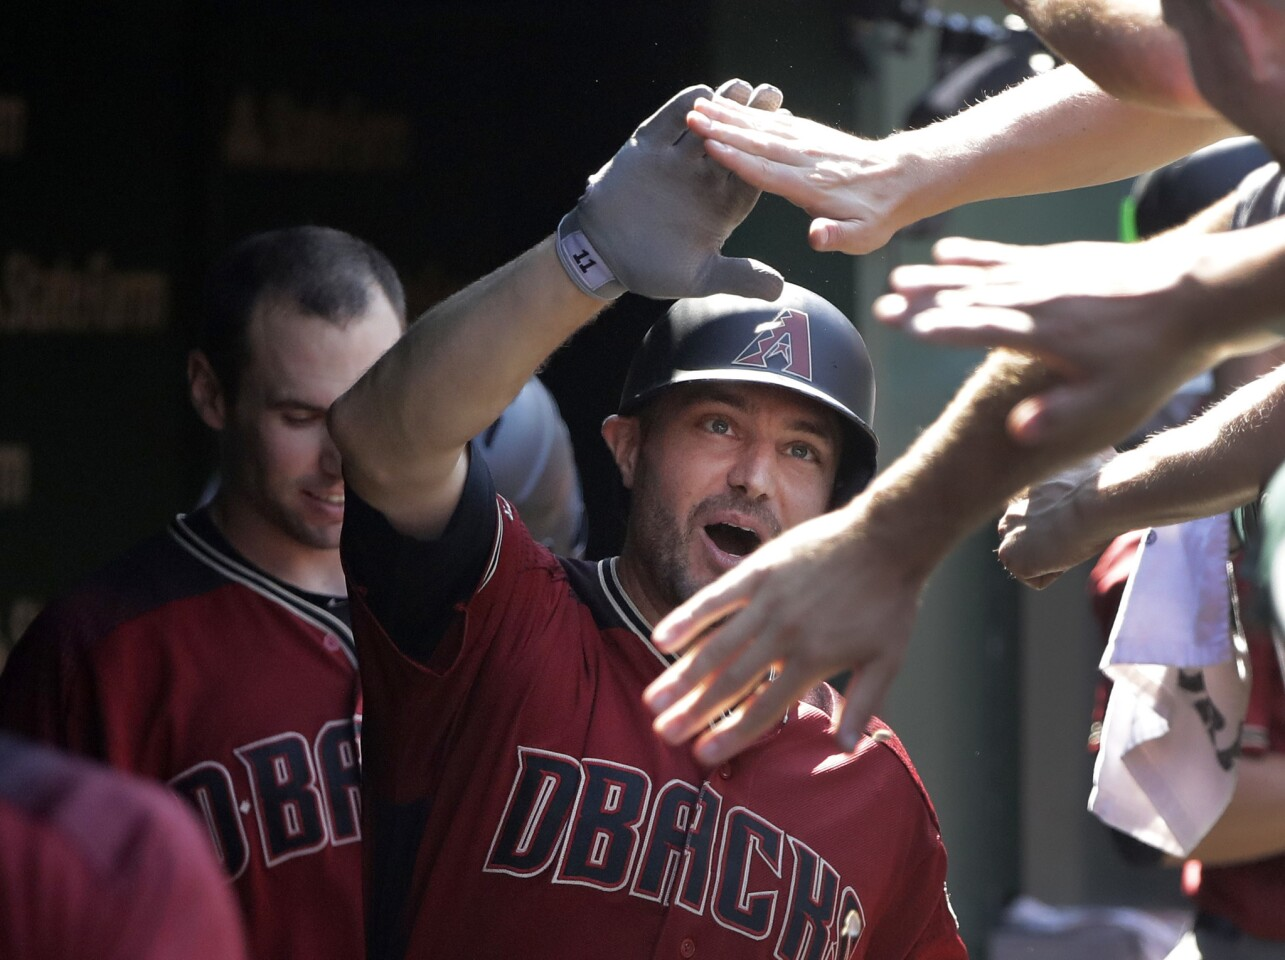 Arizona Diamondbacks' A.J. Pollock celebrates his home run off Chicago Cubs starting pitcher Jon Lester in the dugout during the seventh inning of a baseball game Wednesday, July 25, 2018, in Chicago. (AP Photo/Charles Rex Arbogast)